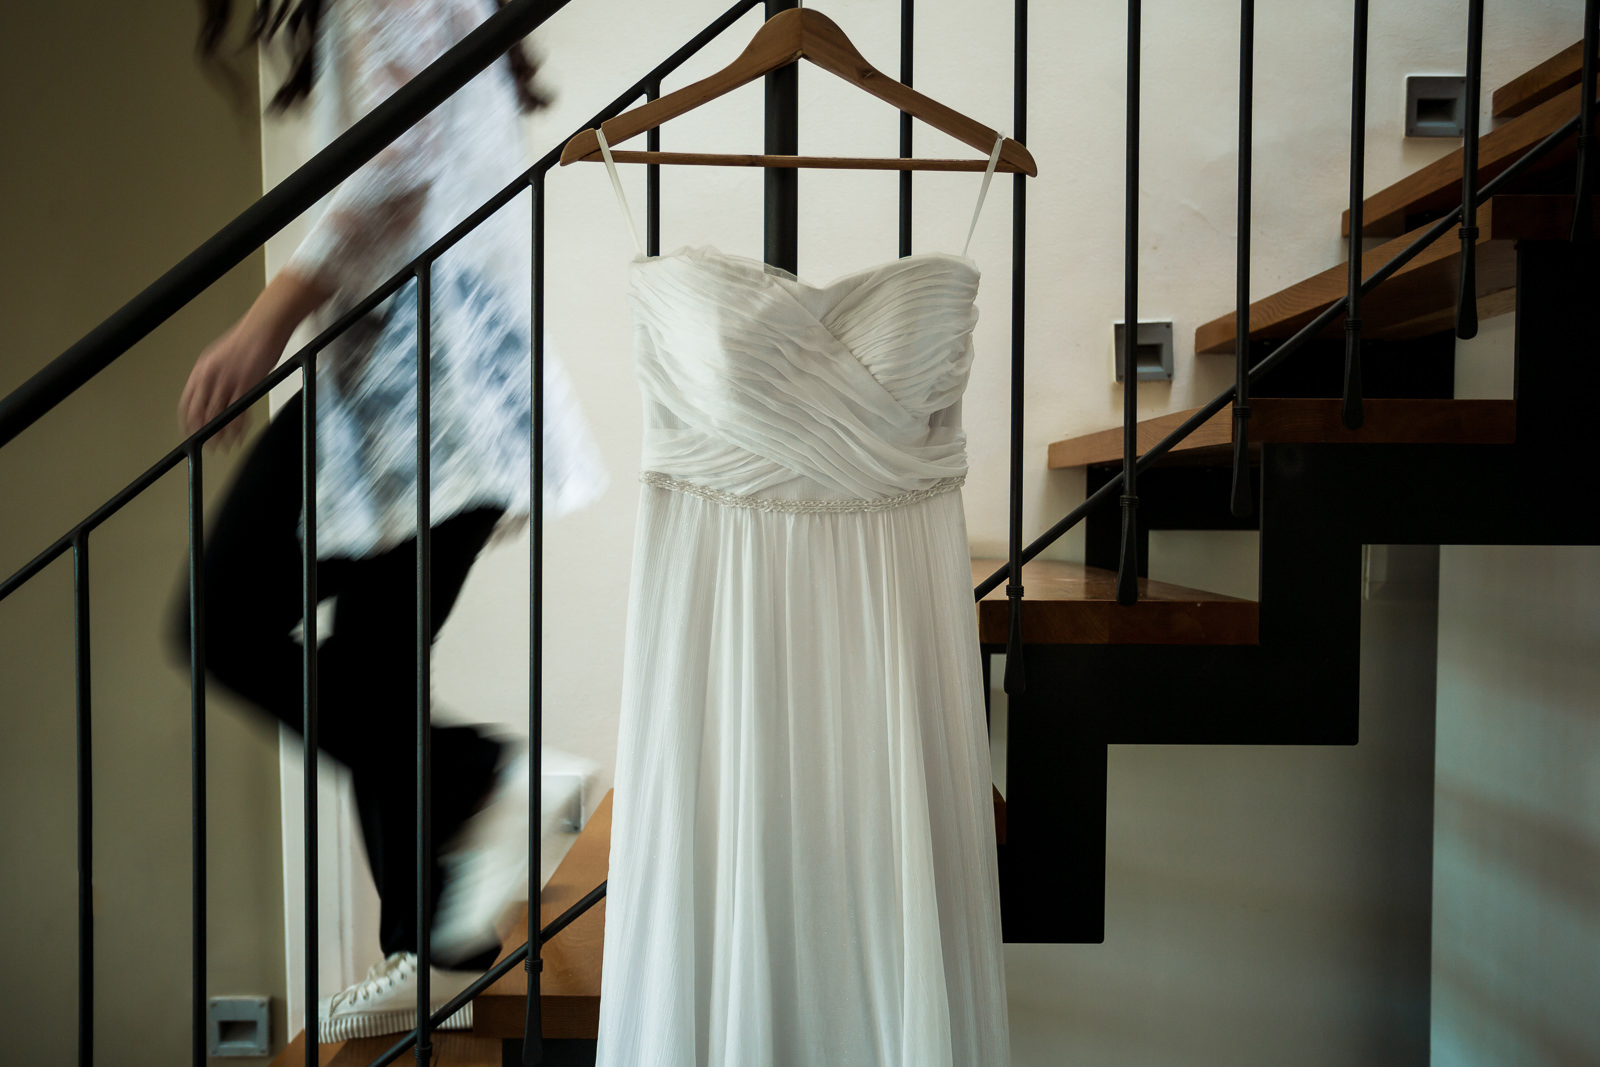 Wedding dress hanging while bride going down the stairs at lower shutter speed